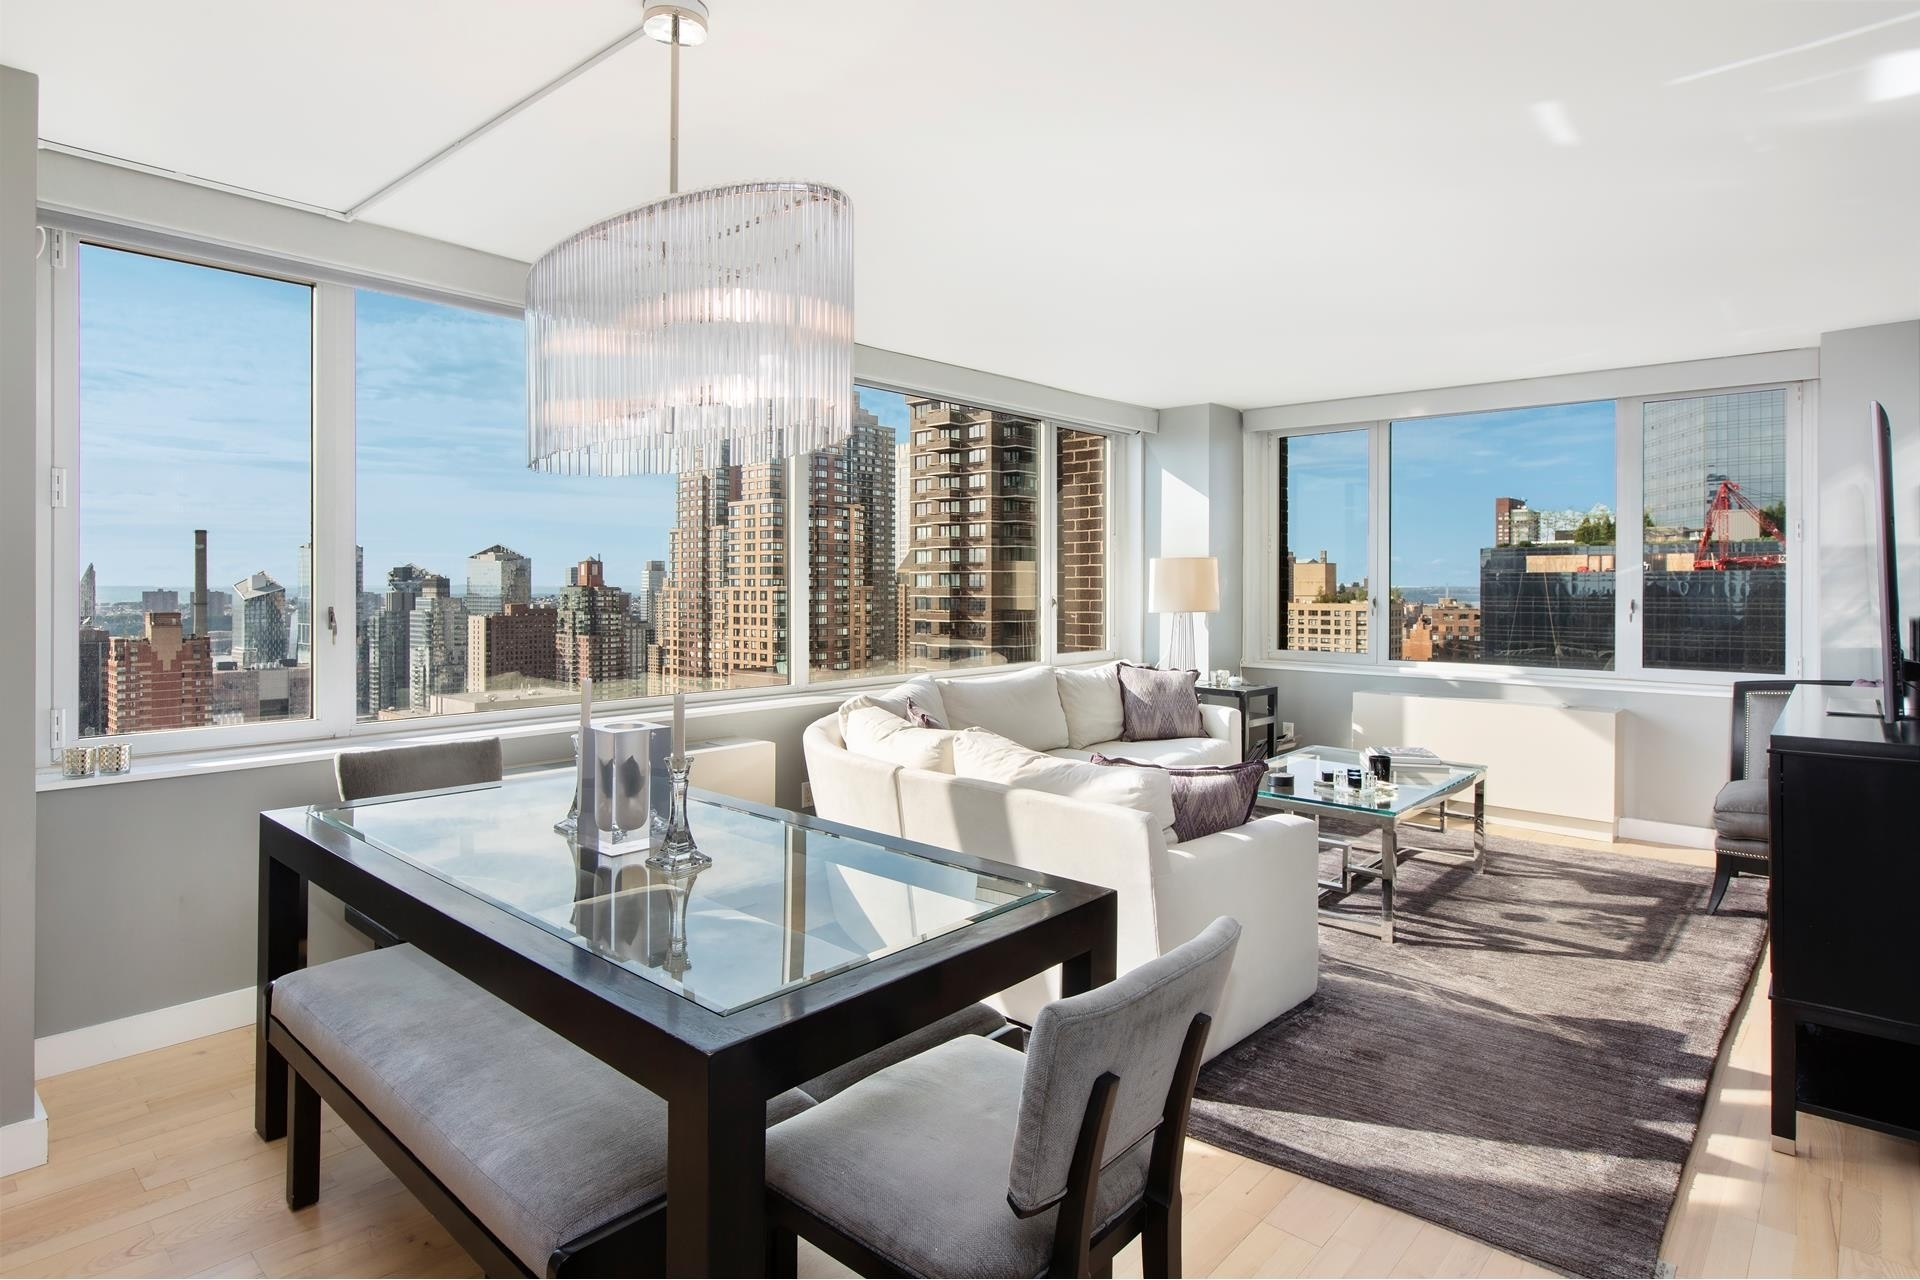 Property at 322 West 57th St, 44D2 Hell's Kitchen, New York, NY 10019